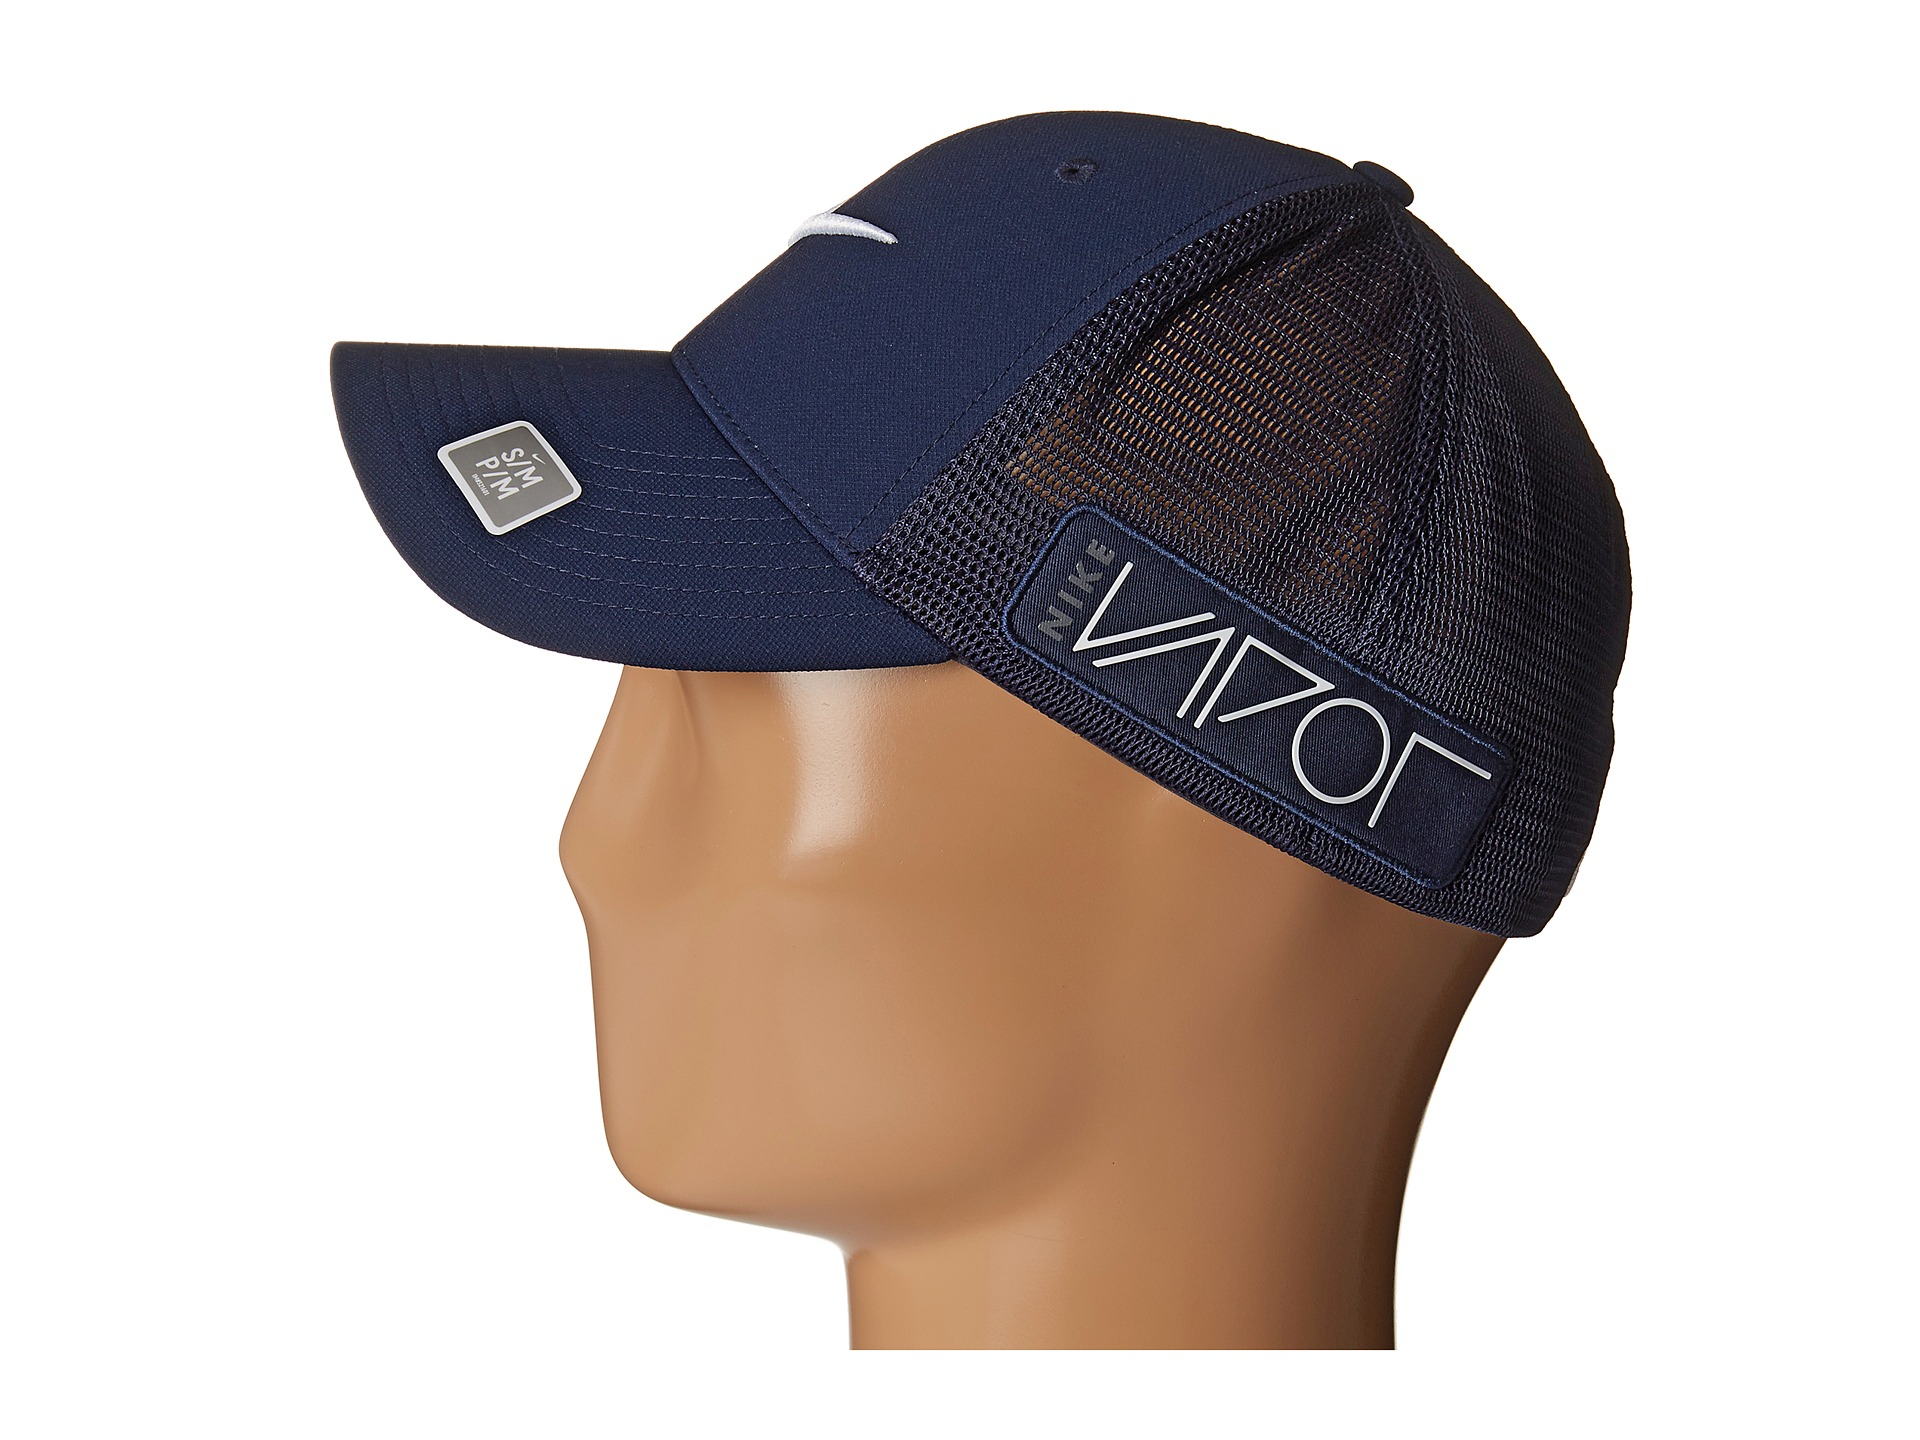 35d81ae482bf7 Nike Tour Legacy Mesh Cap in Blue for Men - Lyst